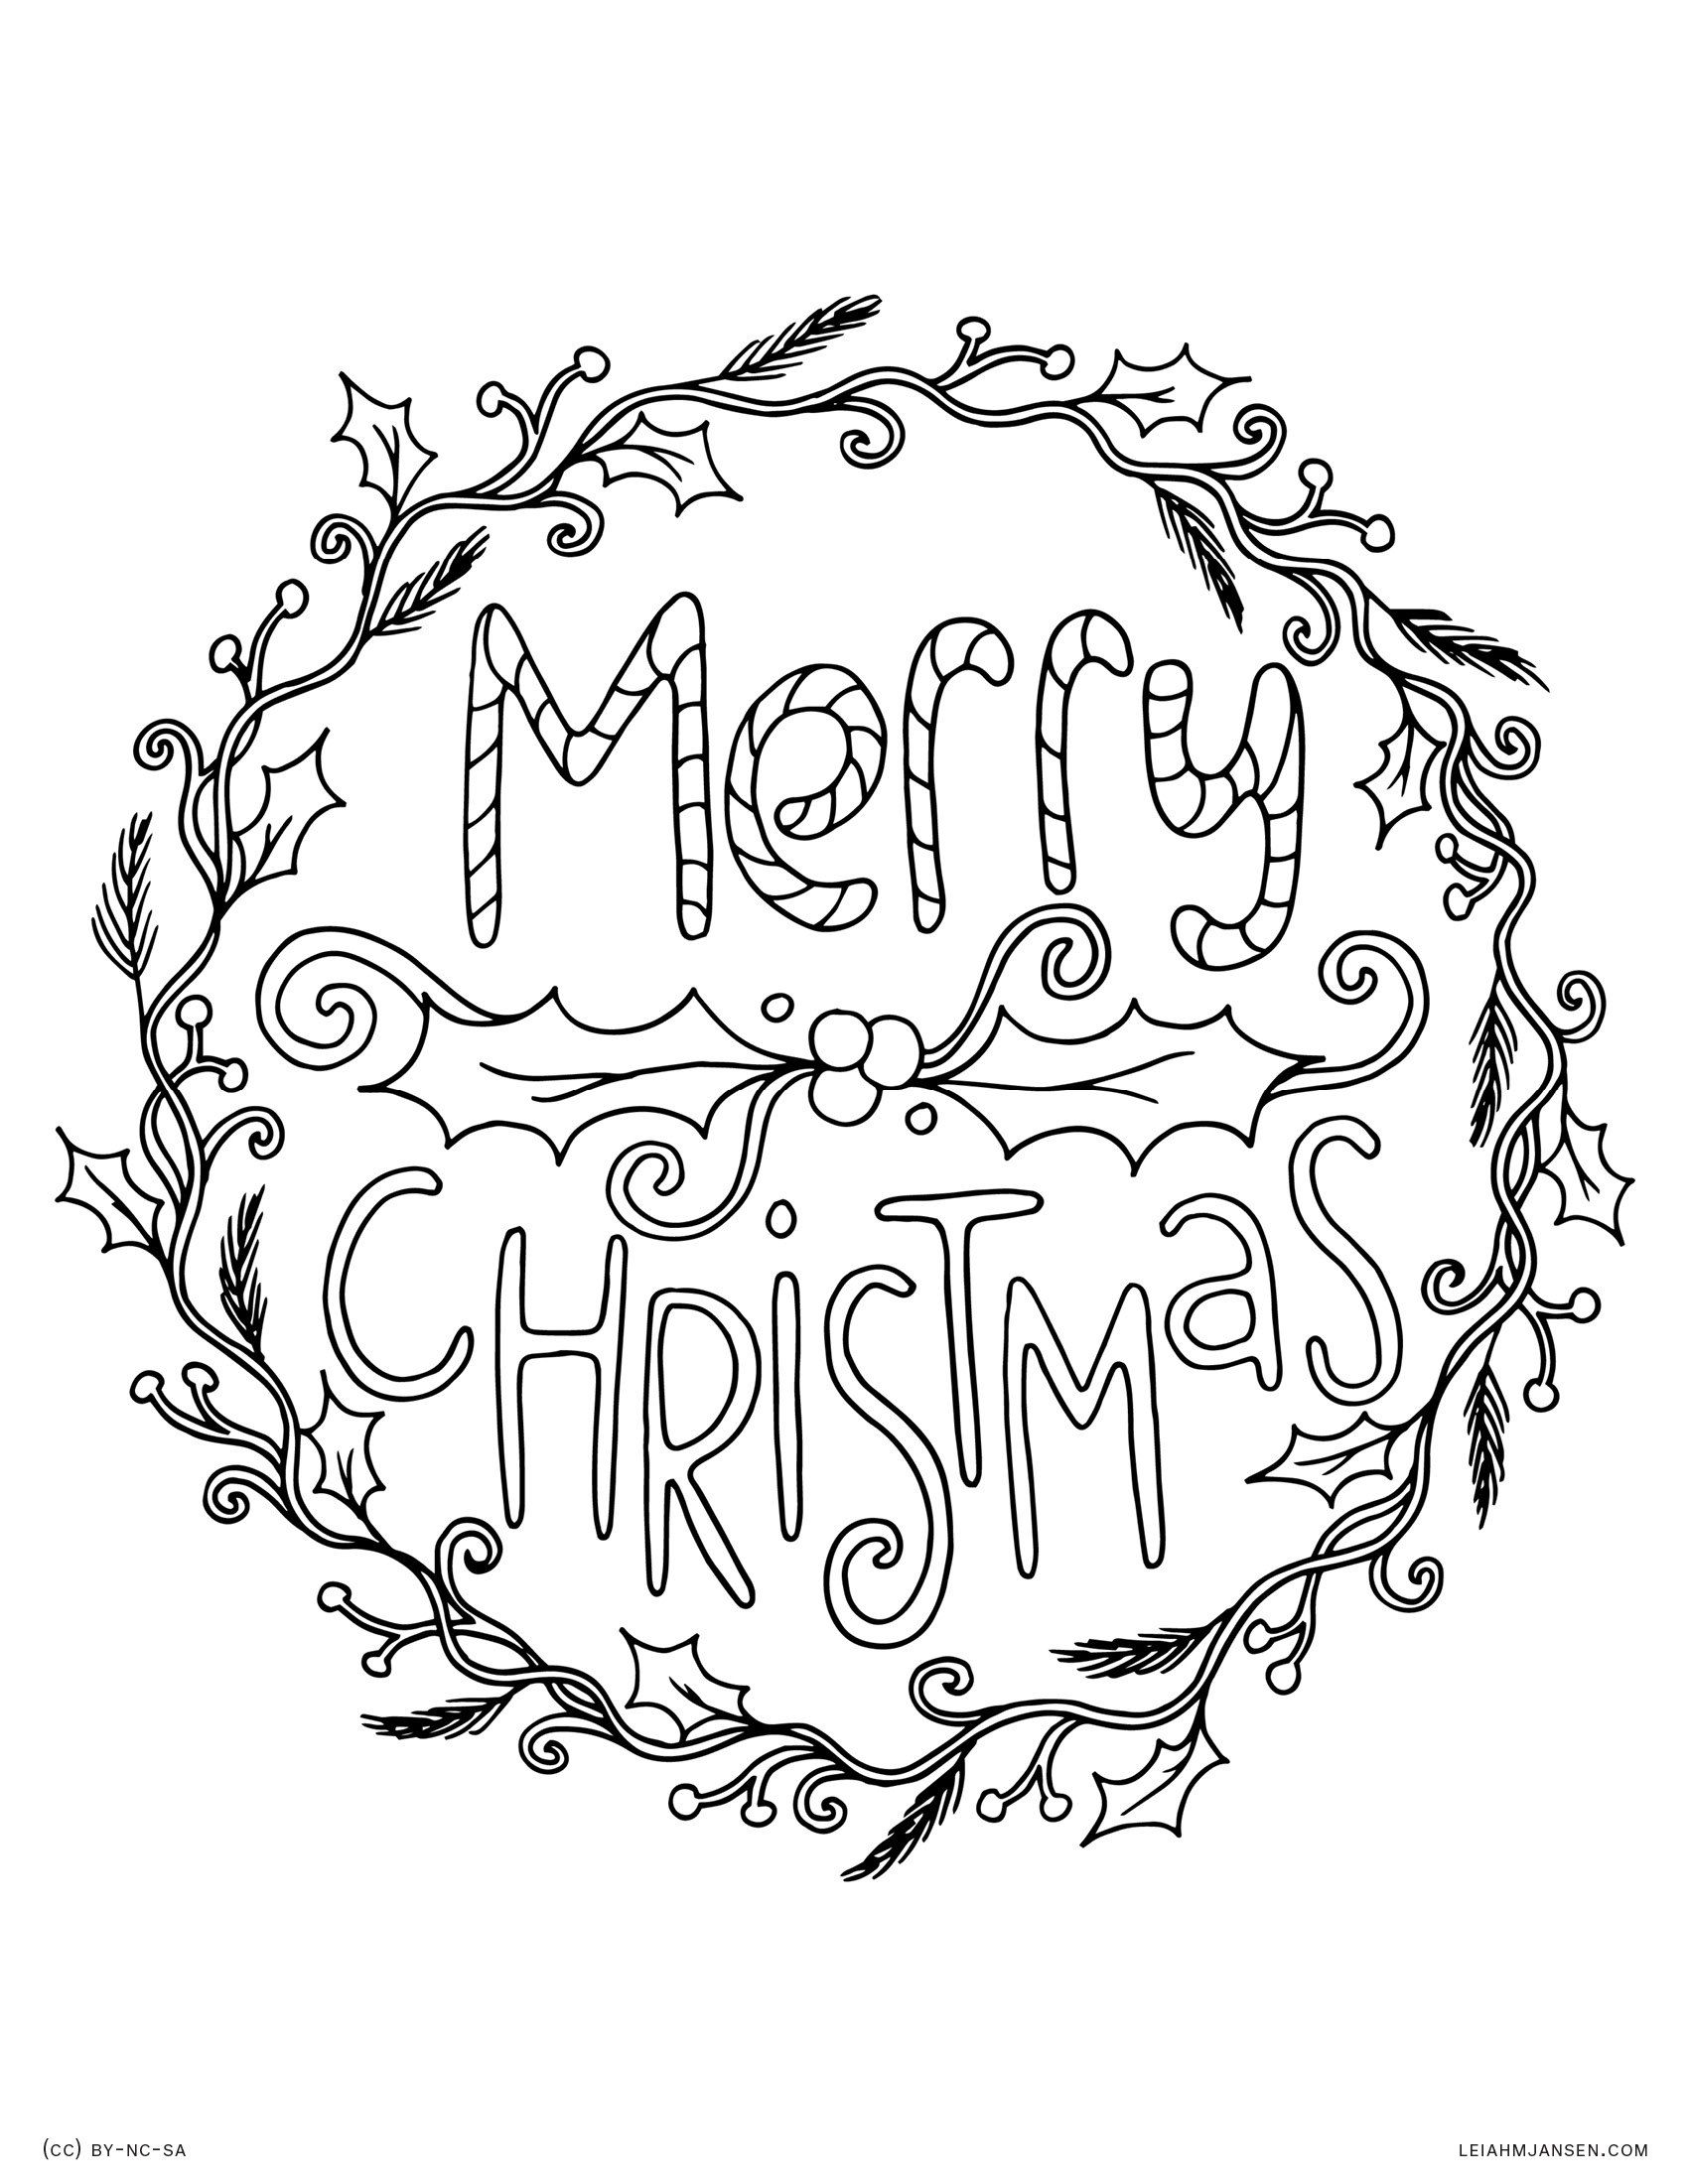 merry christmas wreath and holly happy holidays free printable coloring page for adults and